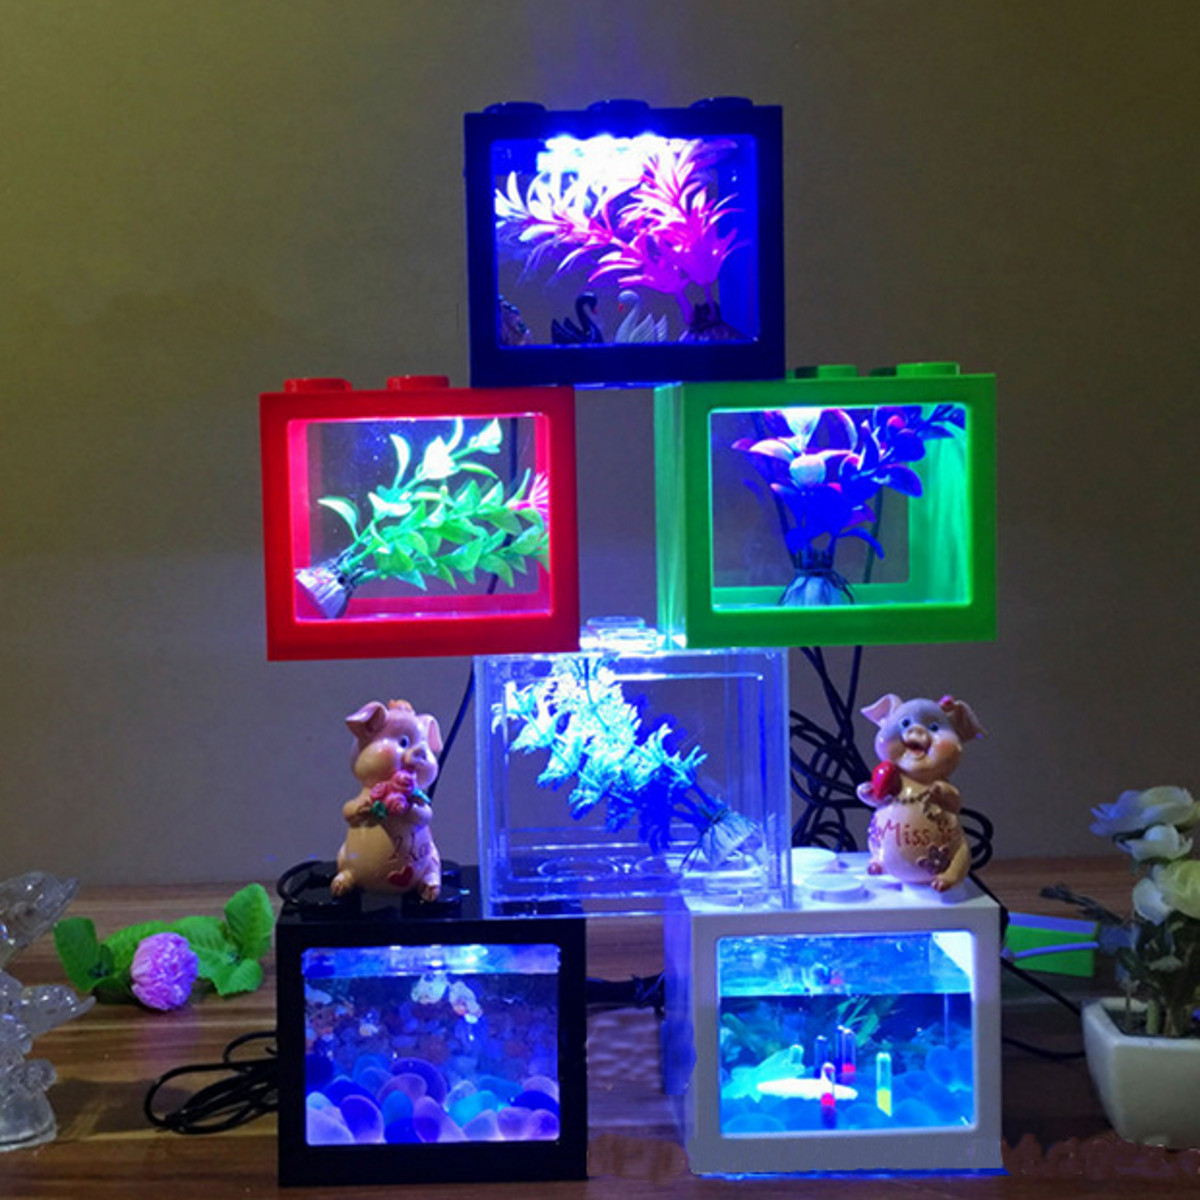 mini usb led light clear fish tank mini aquarium box bettas office desktop decor. Black Bedroom Furniture Sets. Home Design Ideas